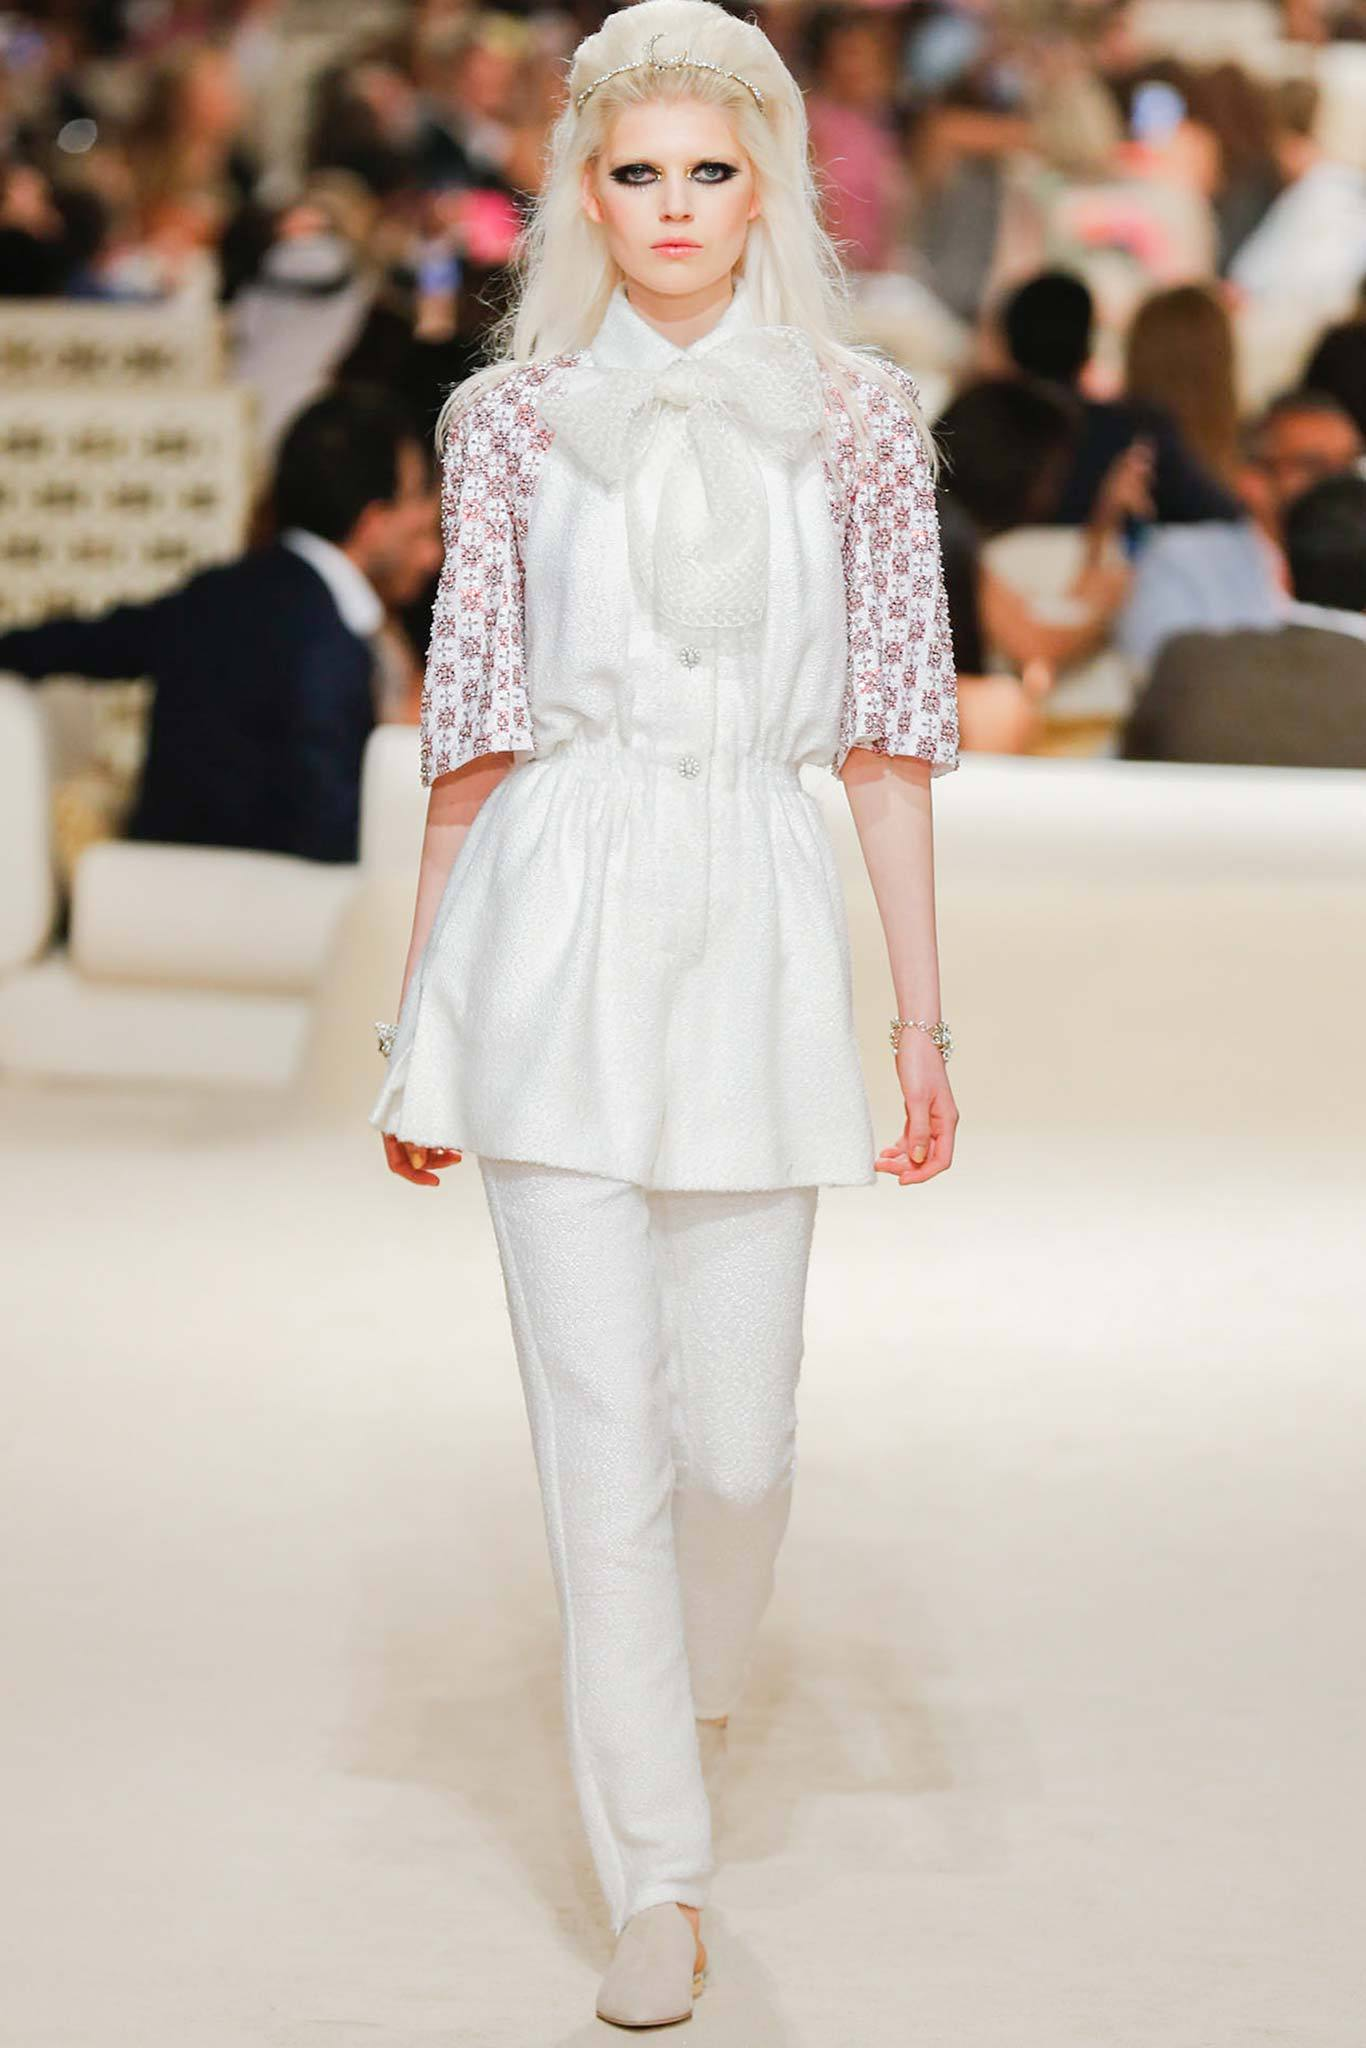 Ola Rudnicka | Chanel Cruise 2015 (Photography: Gianni Pucci / Indigitalimages.com via Style.com)